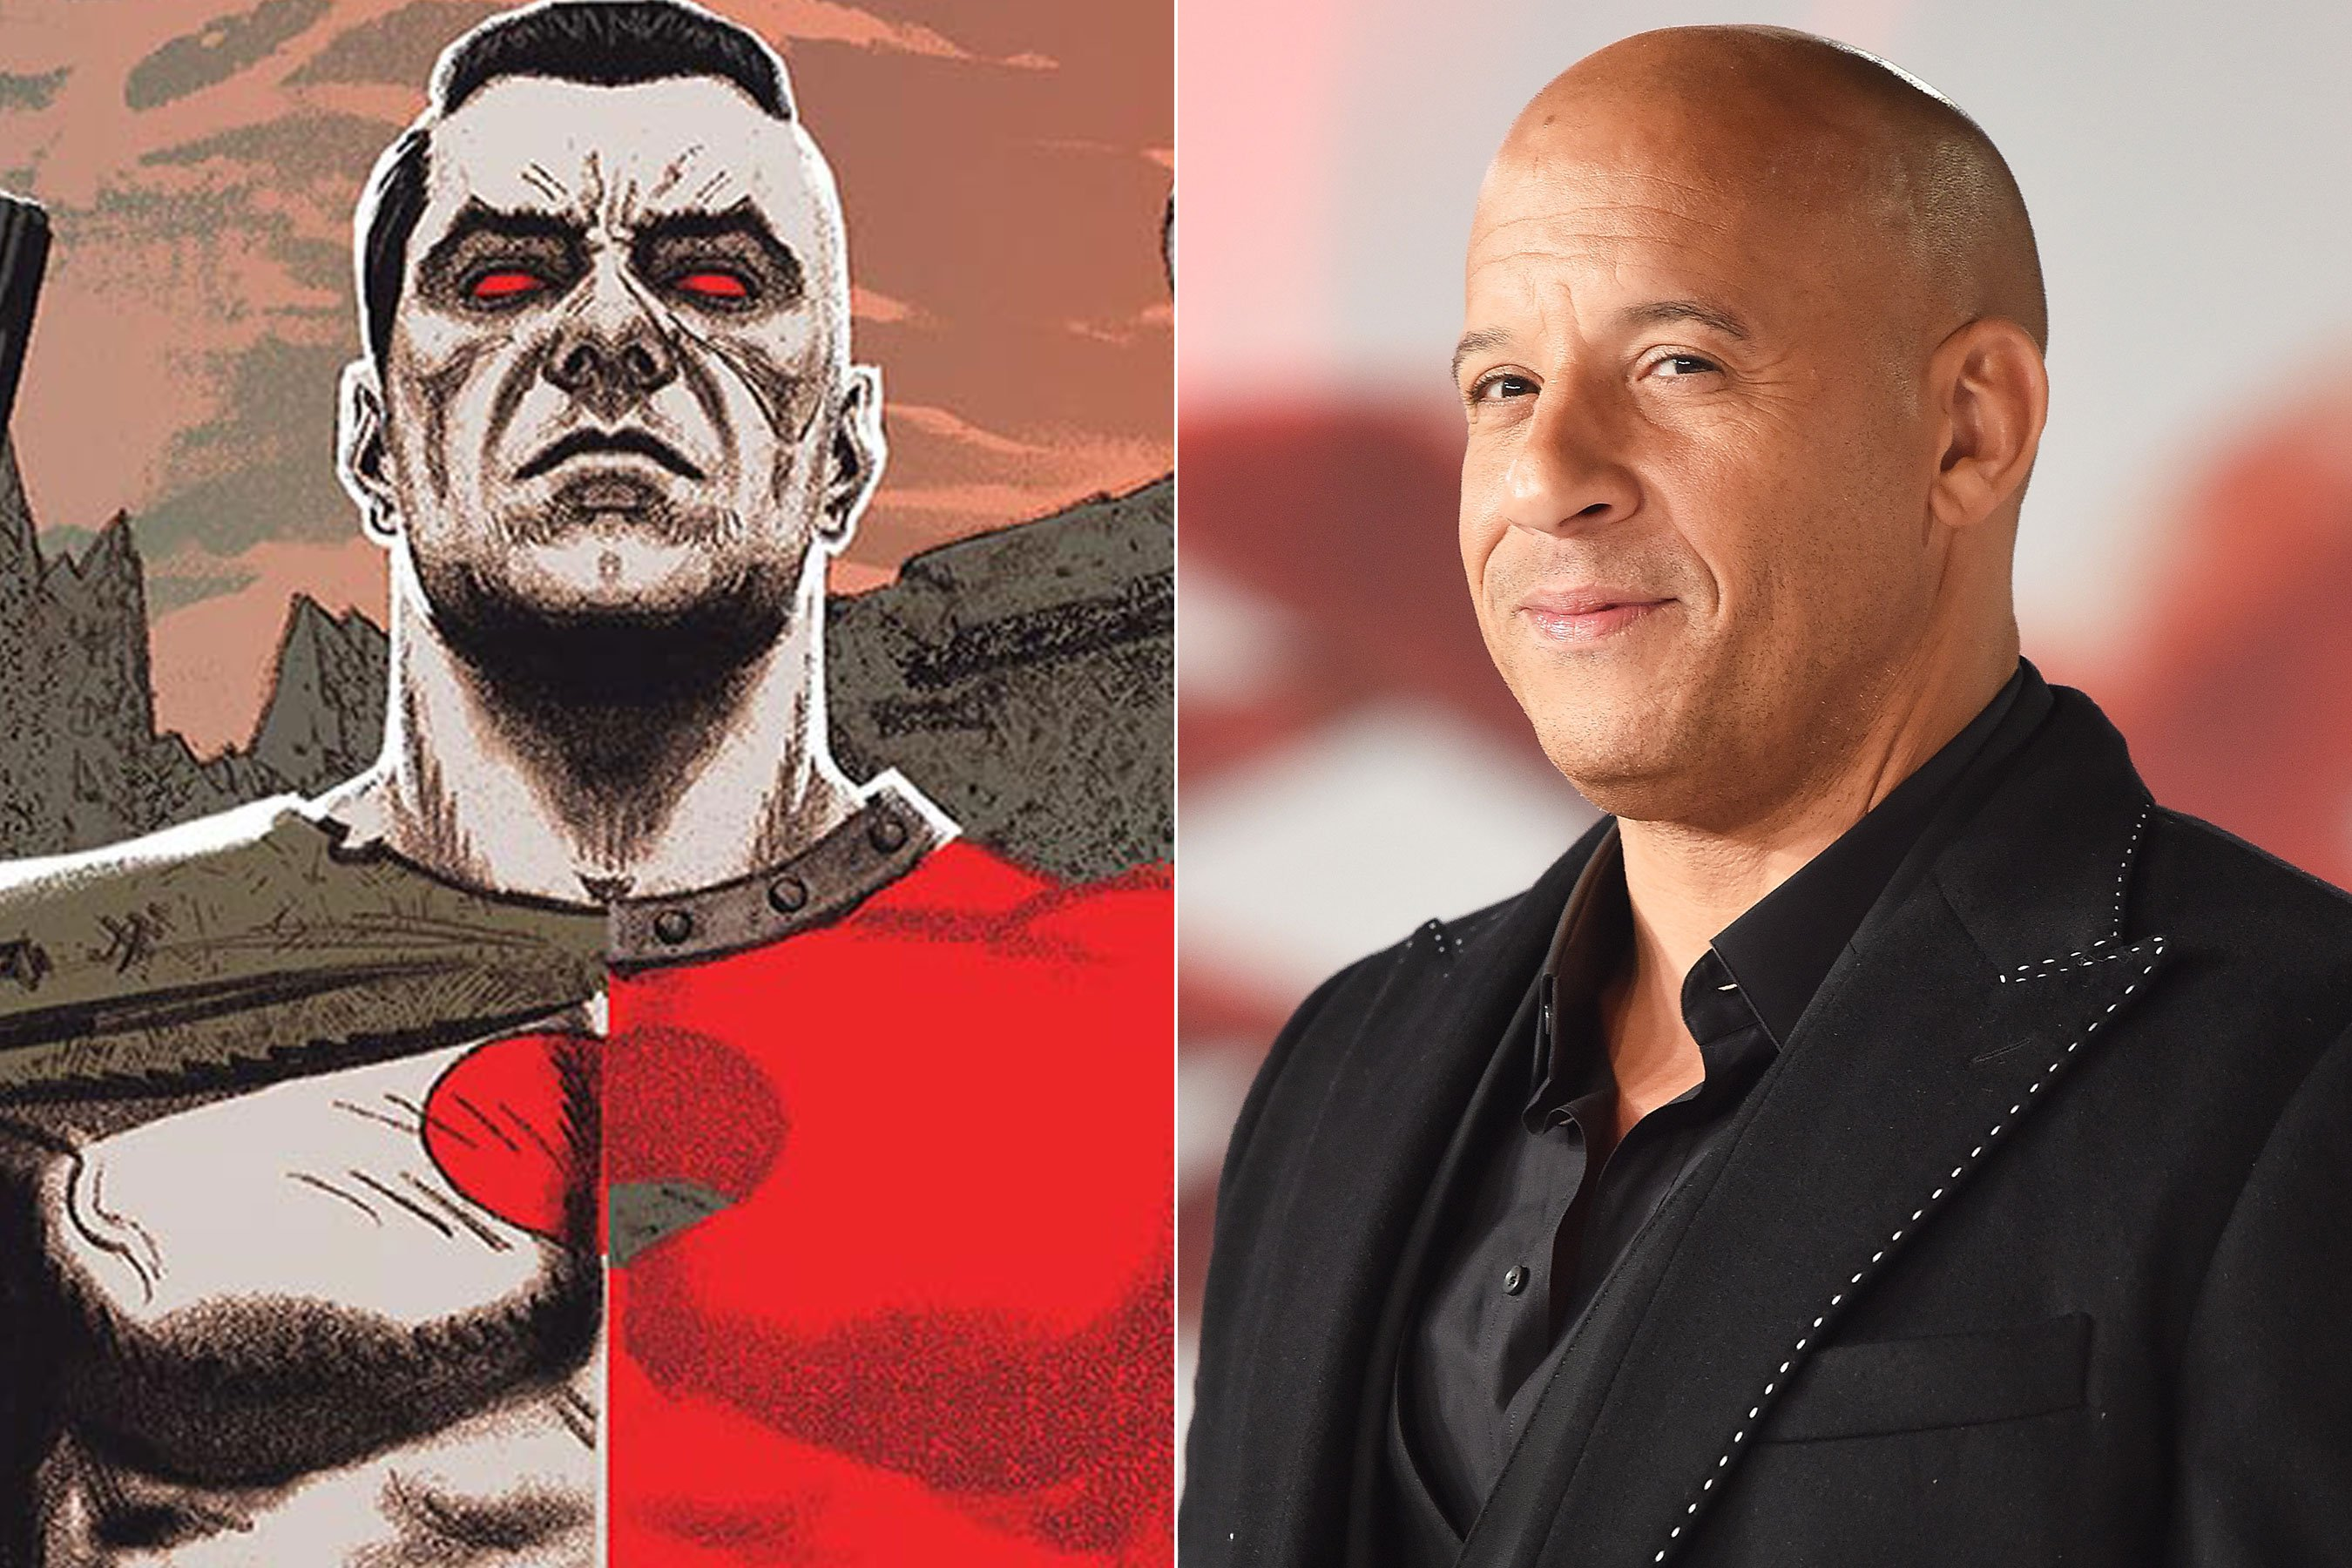 Vin Diesel in talks to play Valiant superhero Bloodshot